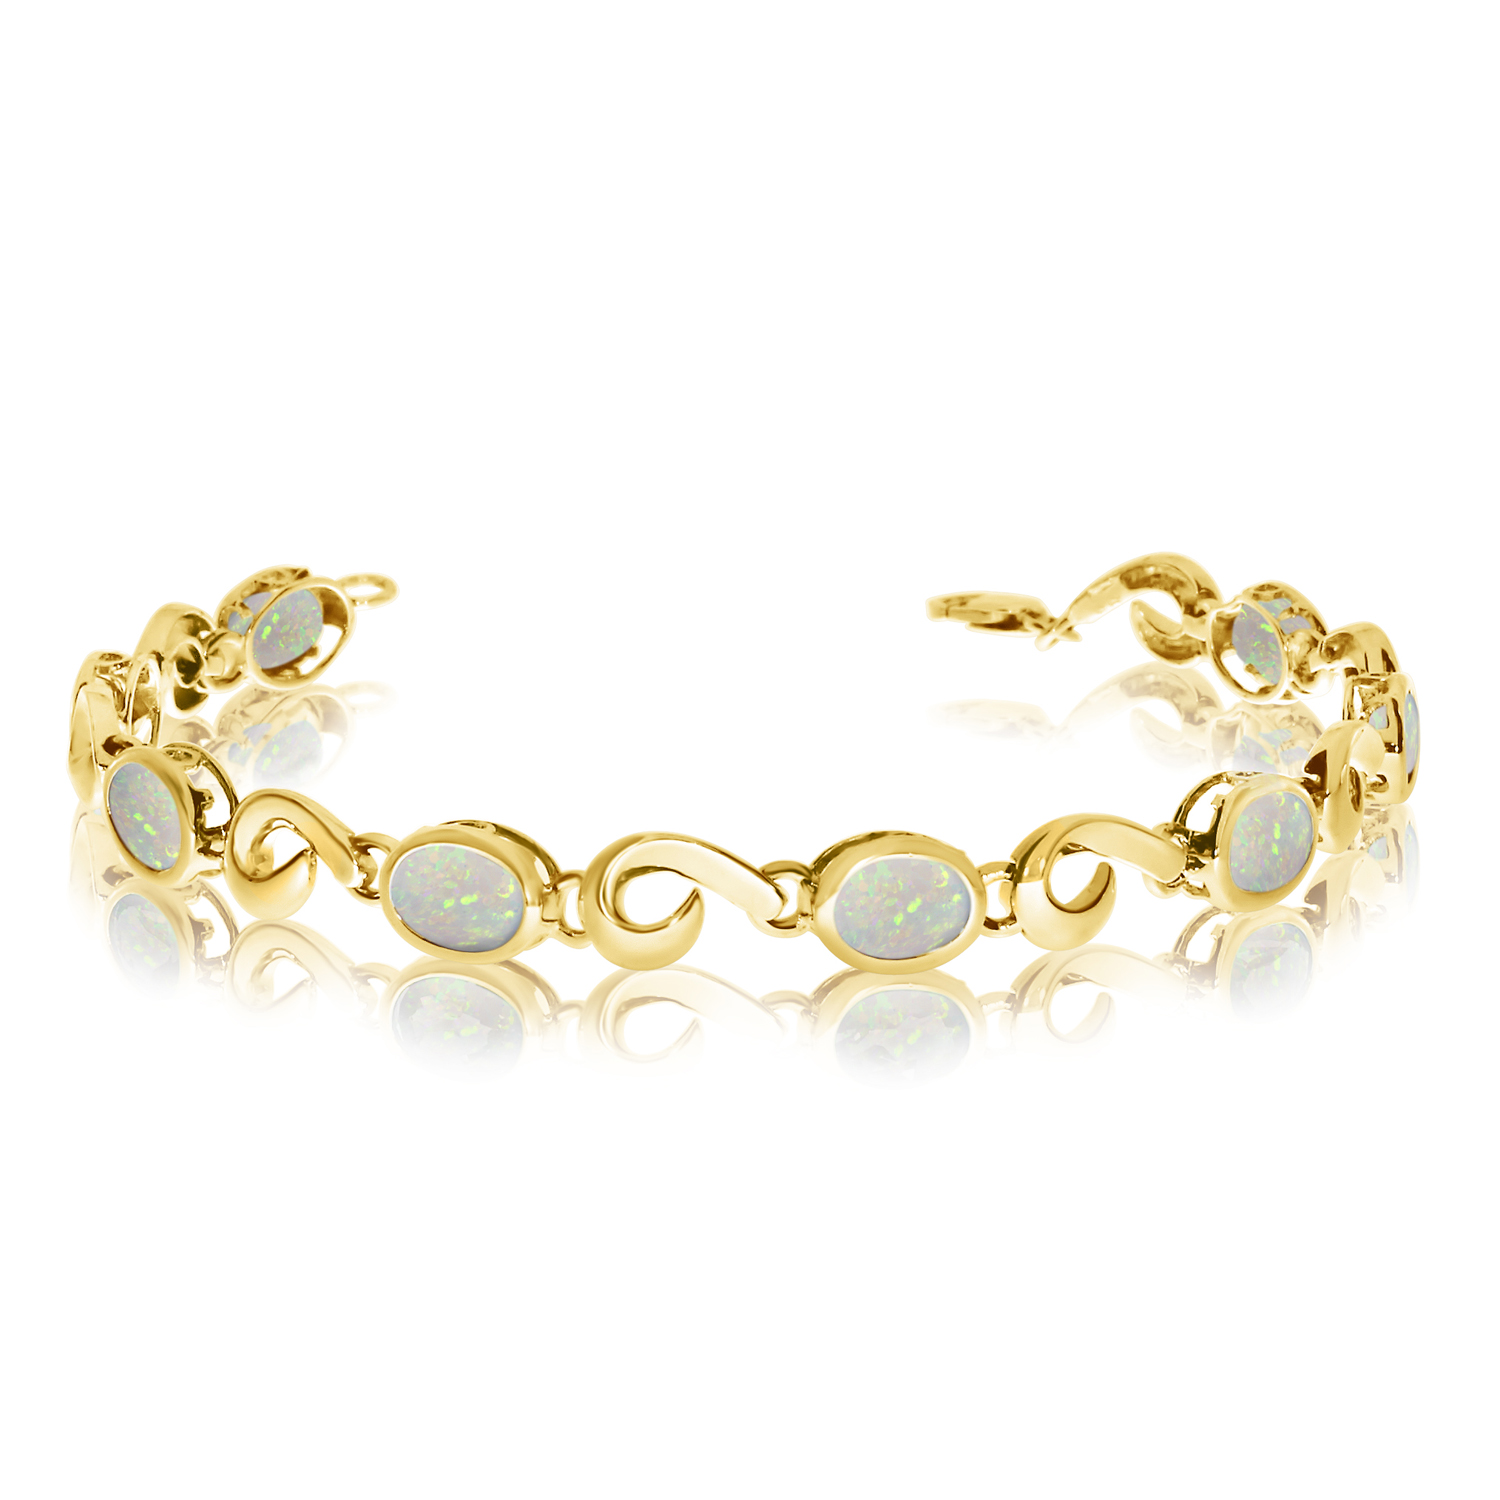 14K Yellow Gold Oval Opal Bracelet by LCD